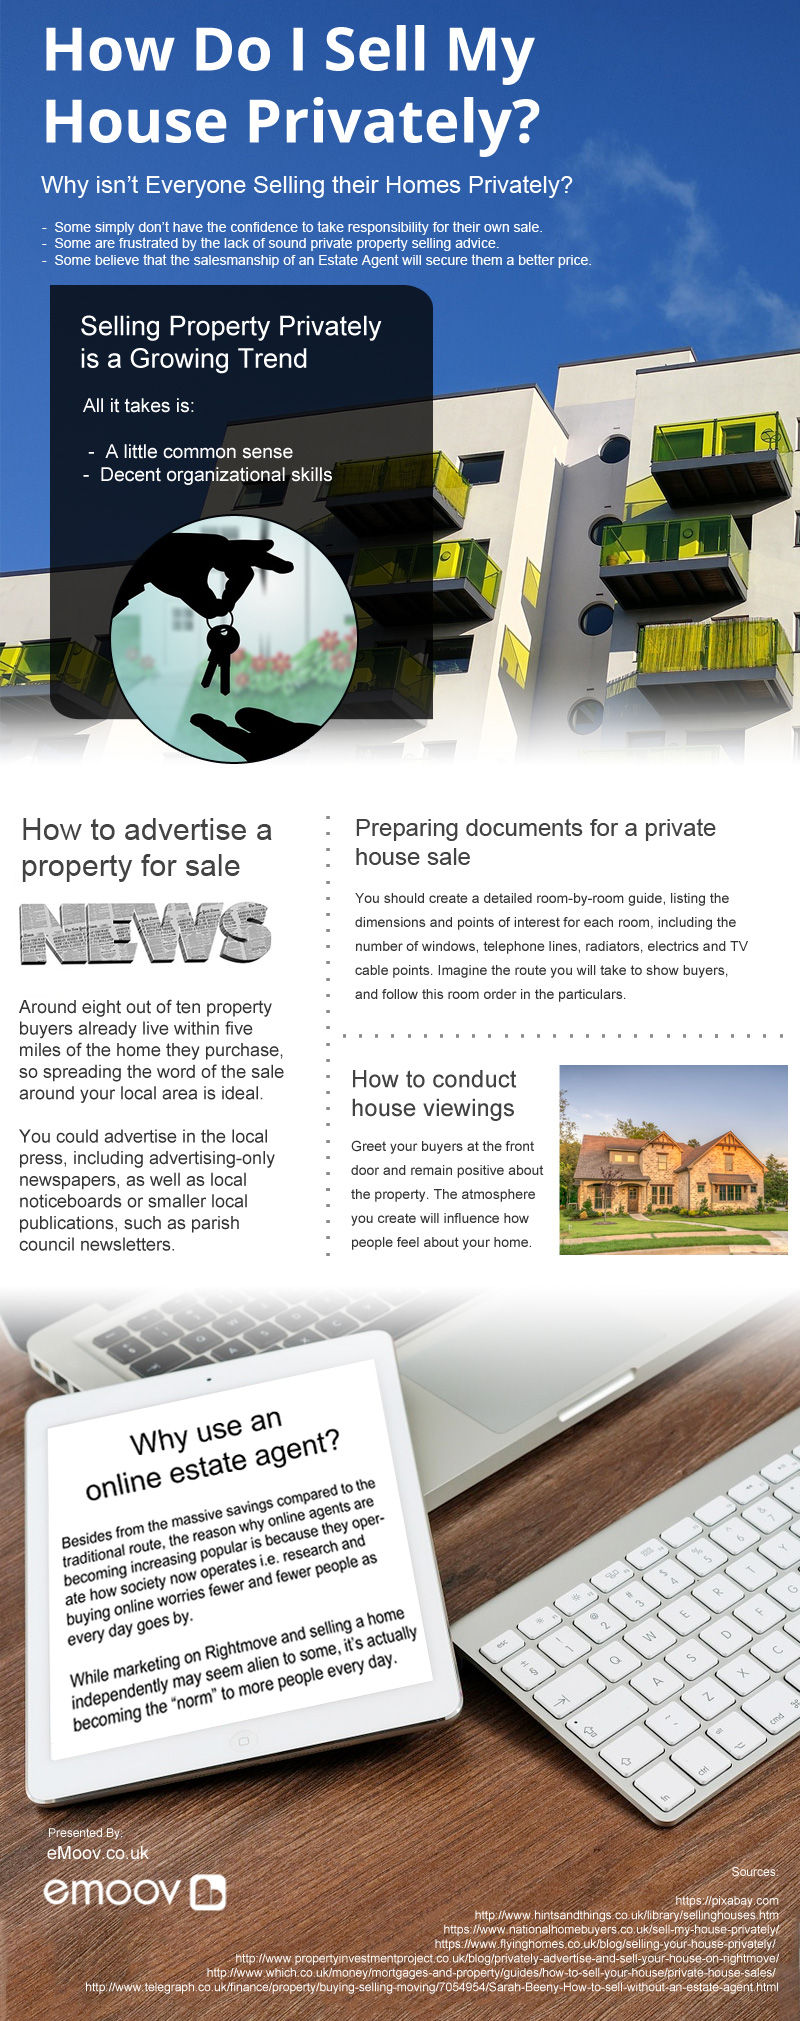 How Do I Sell My House Privately [infographic]